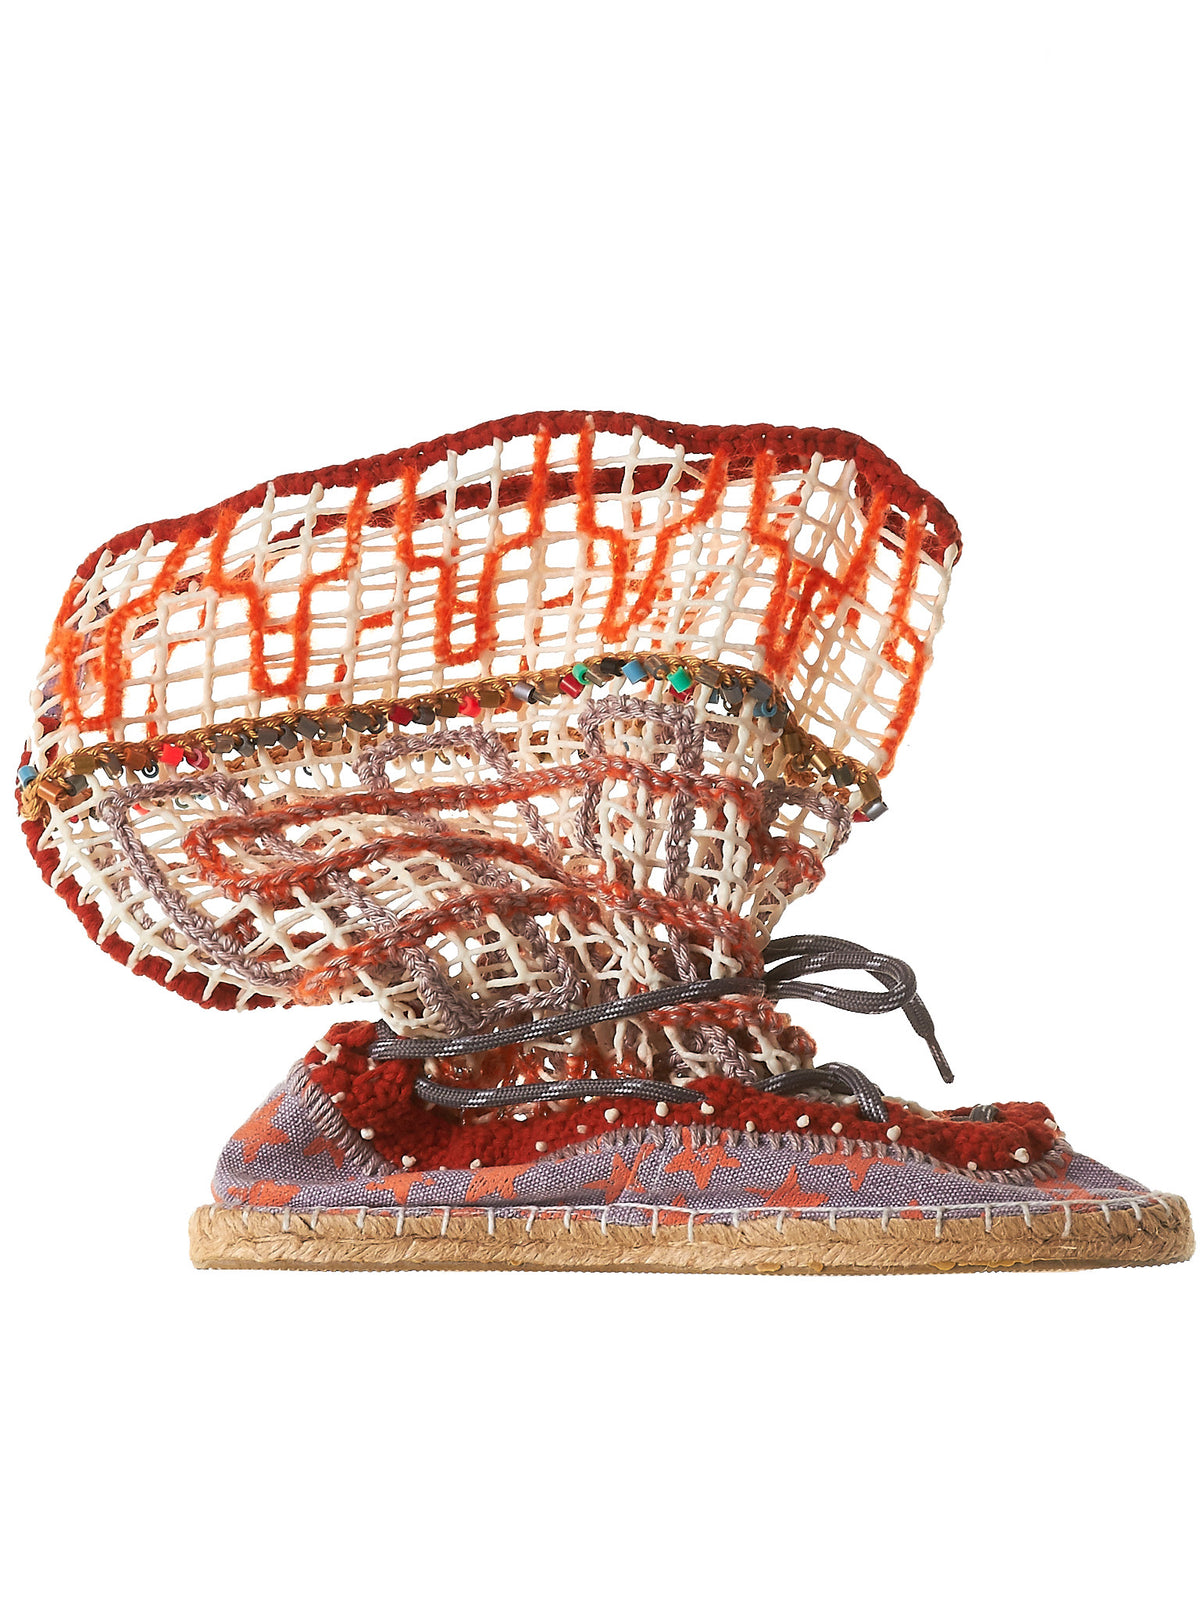 Netted Espadilles (ES04-ORANGE-RED)